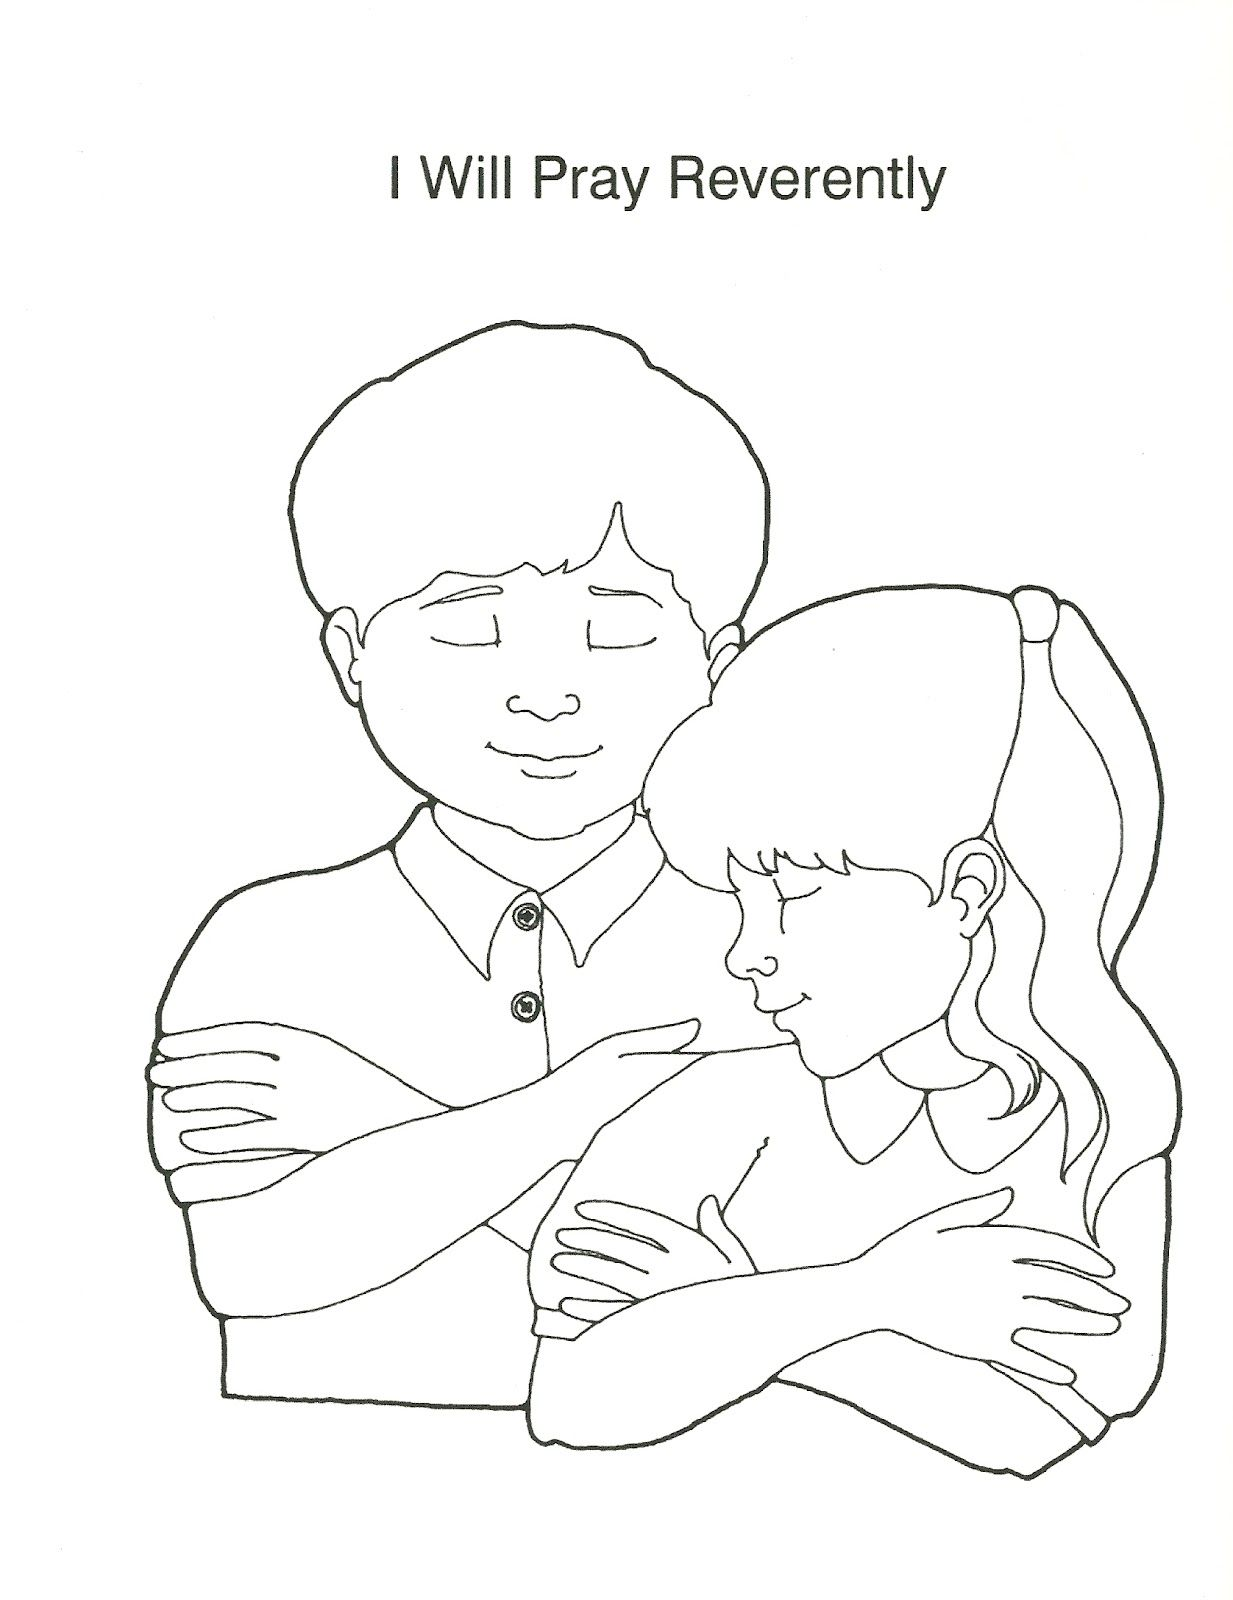 primary 2 manual lesson 10 i can speak with heavenly father in prayer journal page - Lds Primary Coloring Pages Prayer